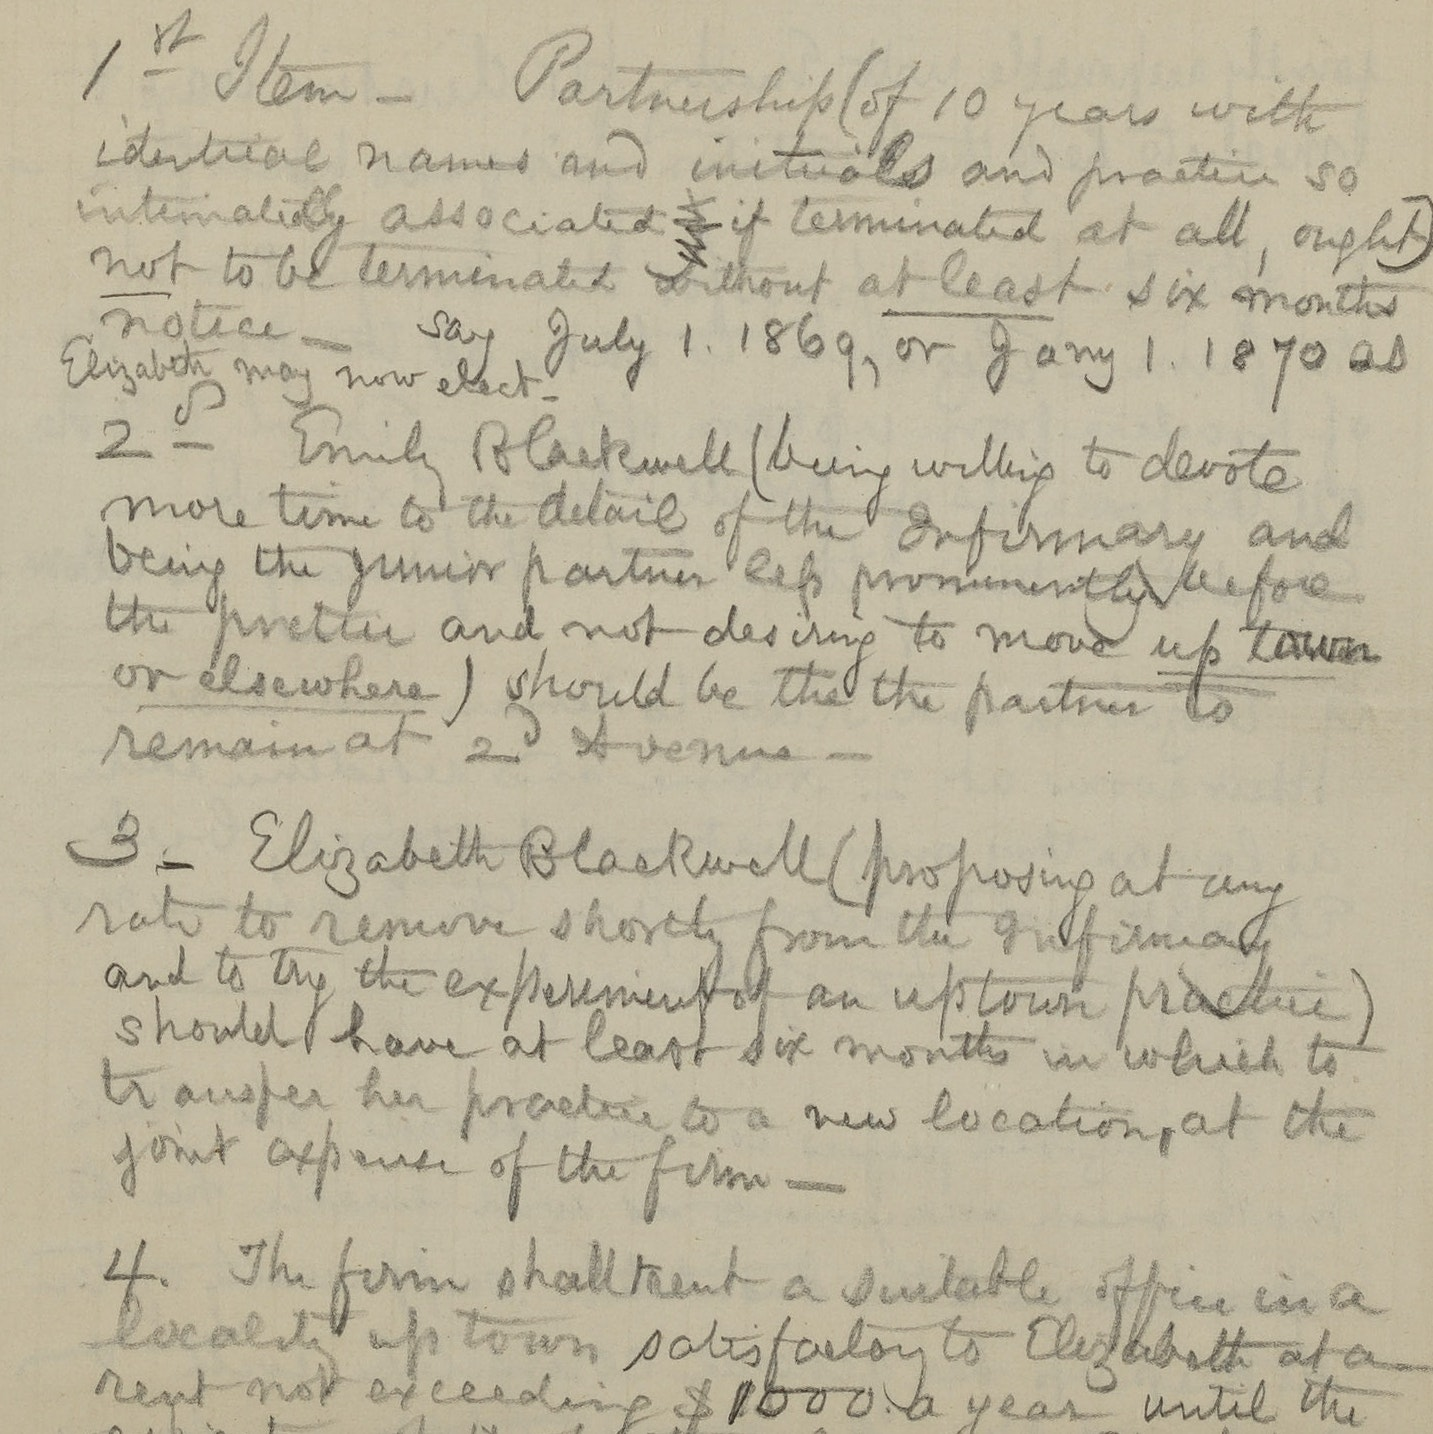 Agreement between Elizabeth and Emily Blackwell